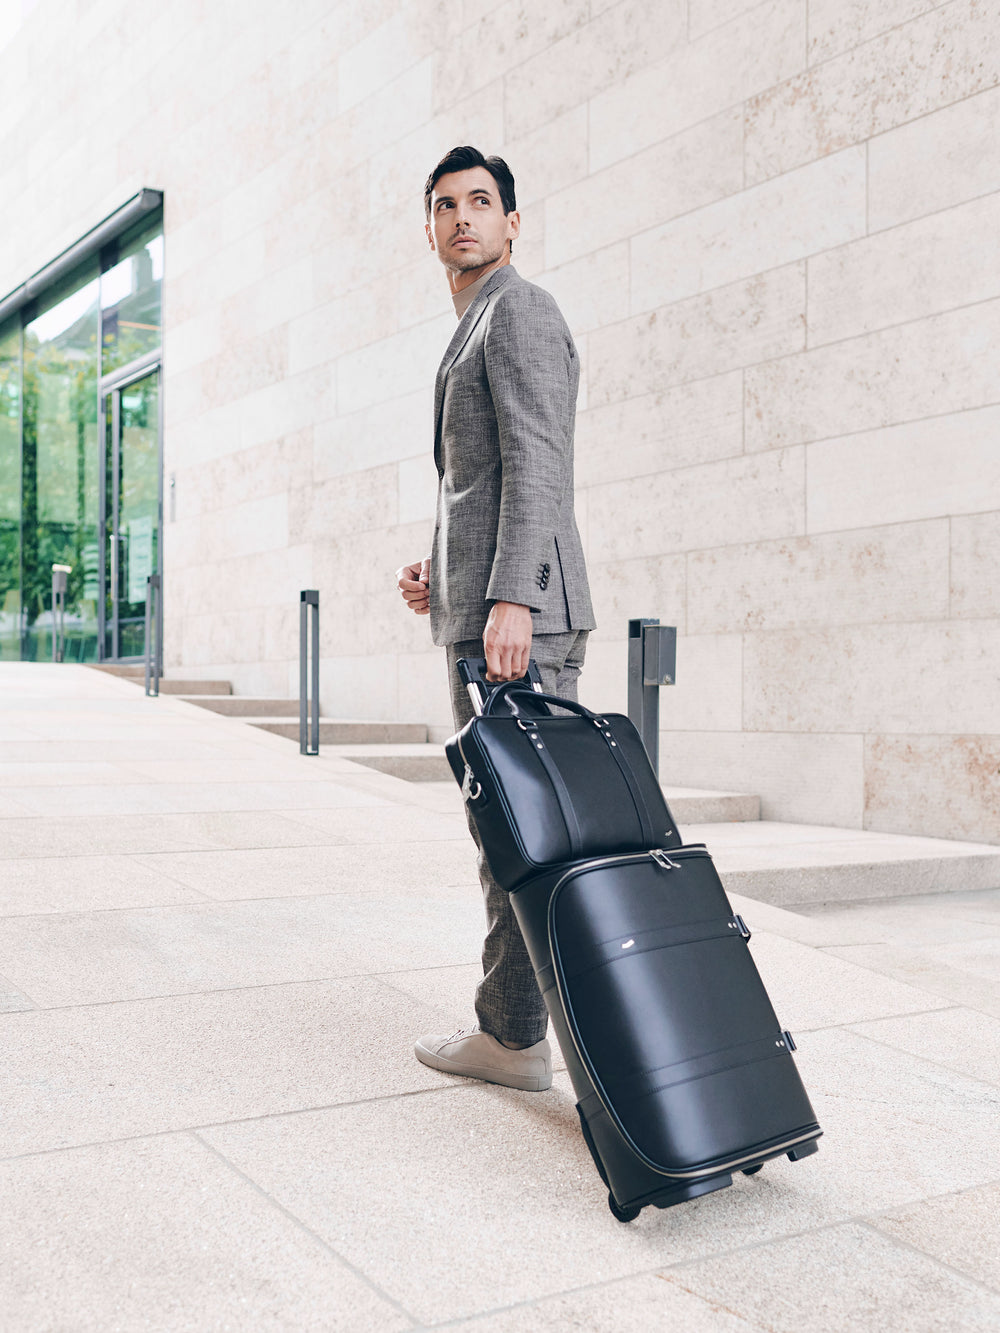 f38 leather carry-on luggage with f25 business briefcase in black leather schwarzes leder